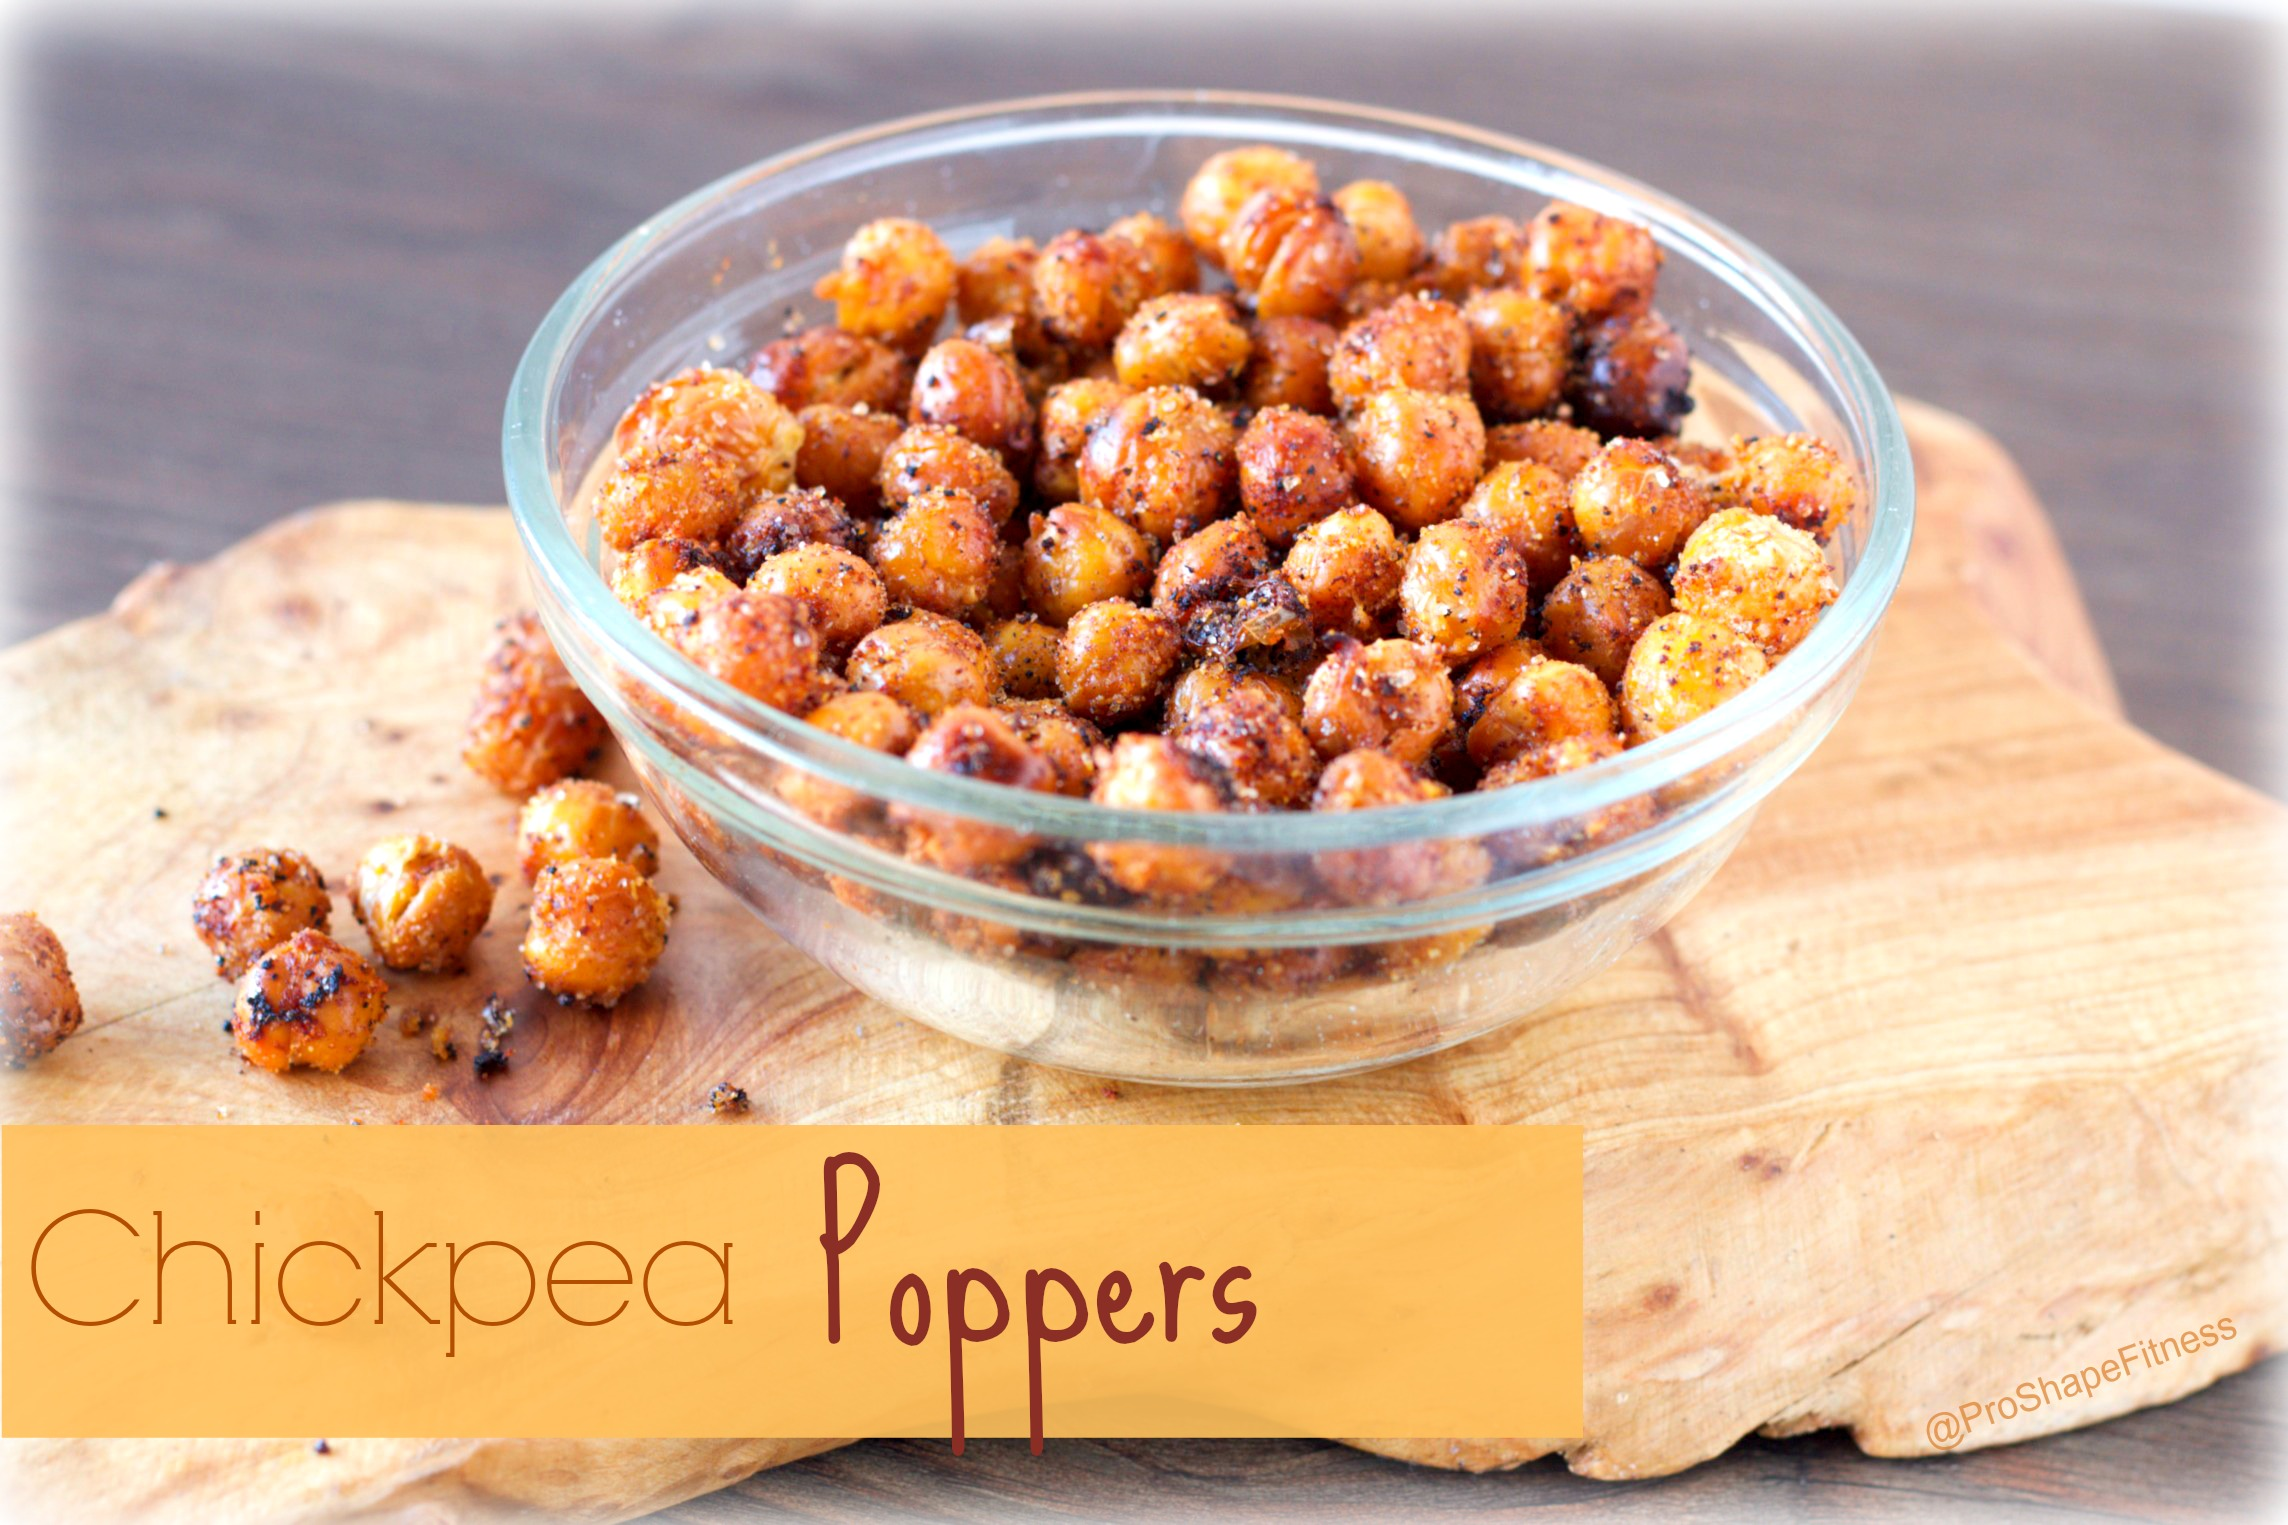 Healthy Chickpea Poppers - ProShapeFitness